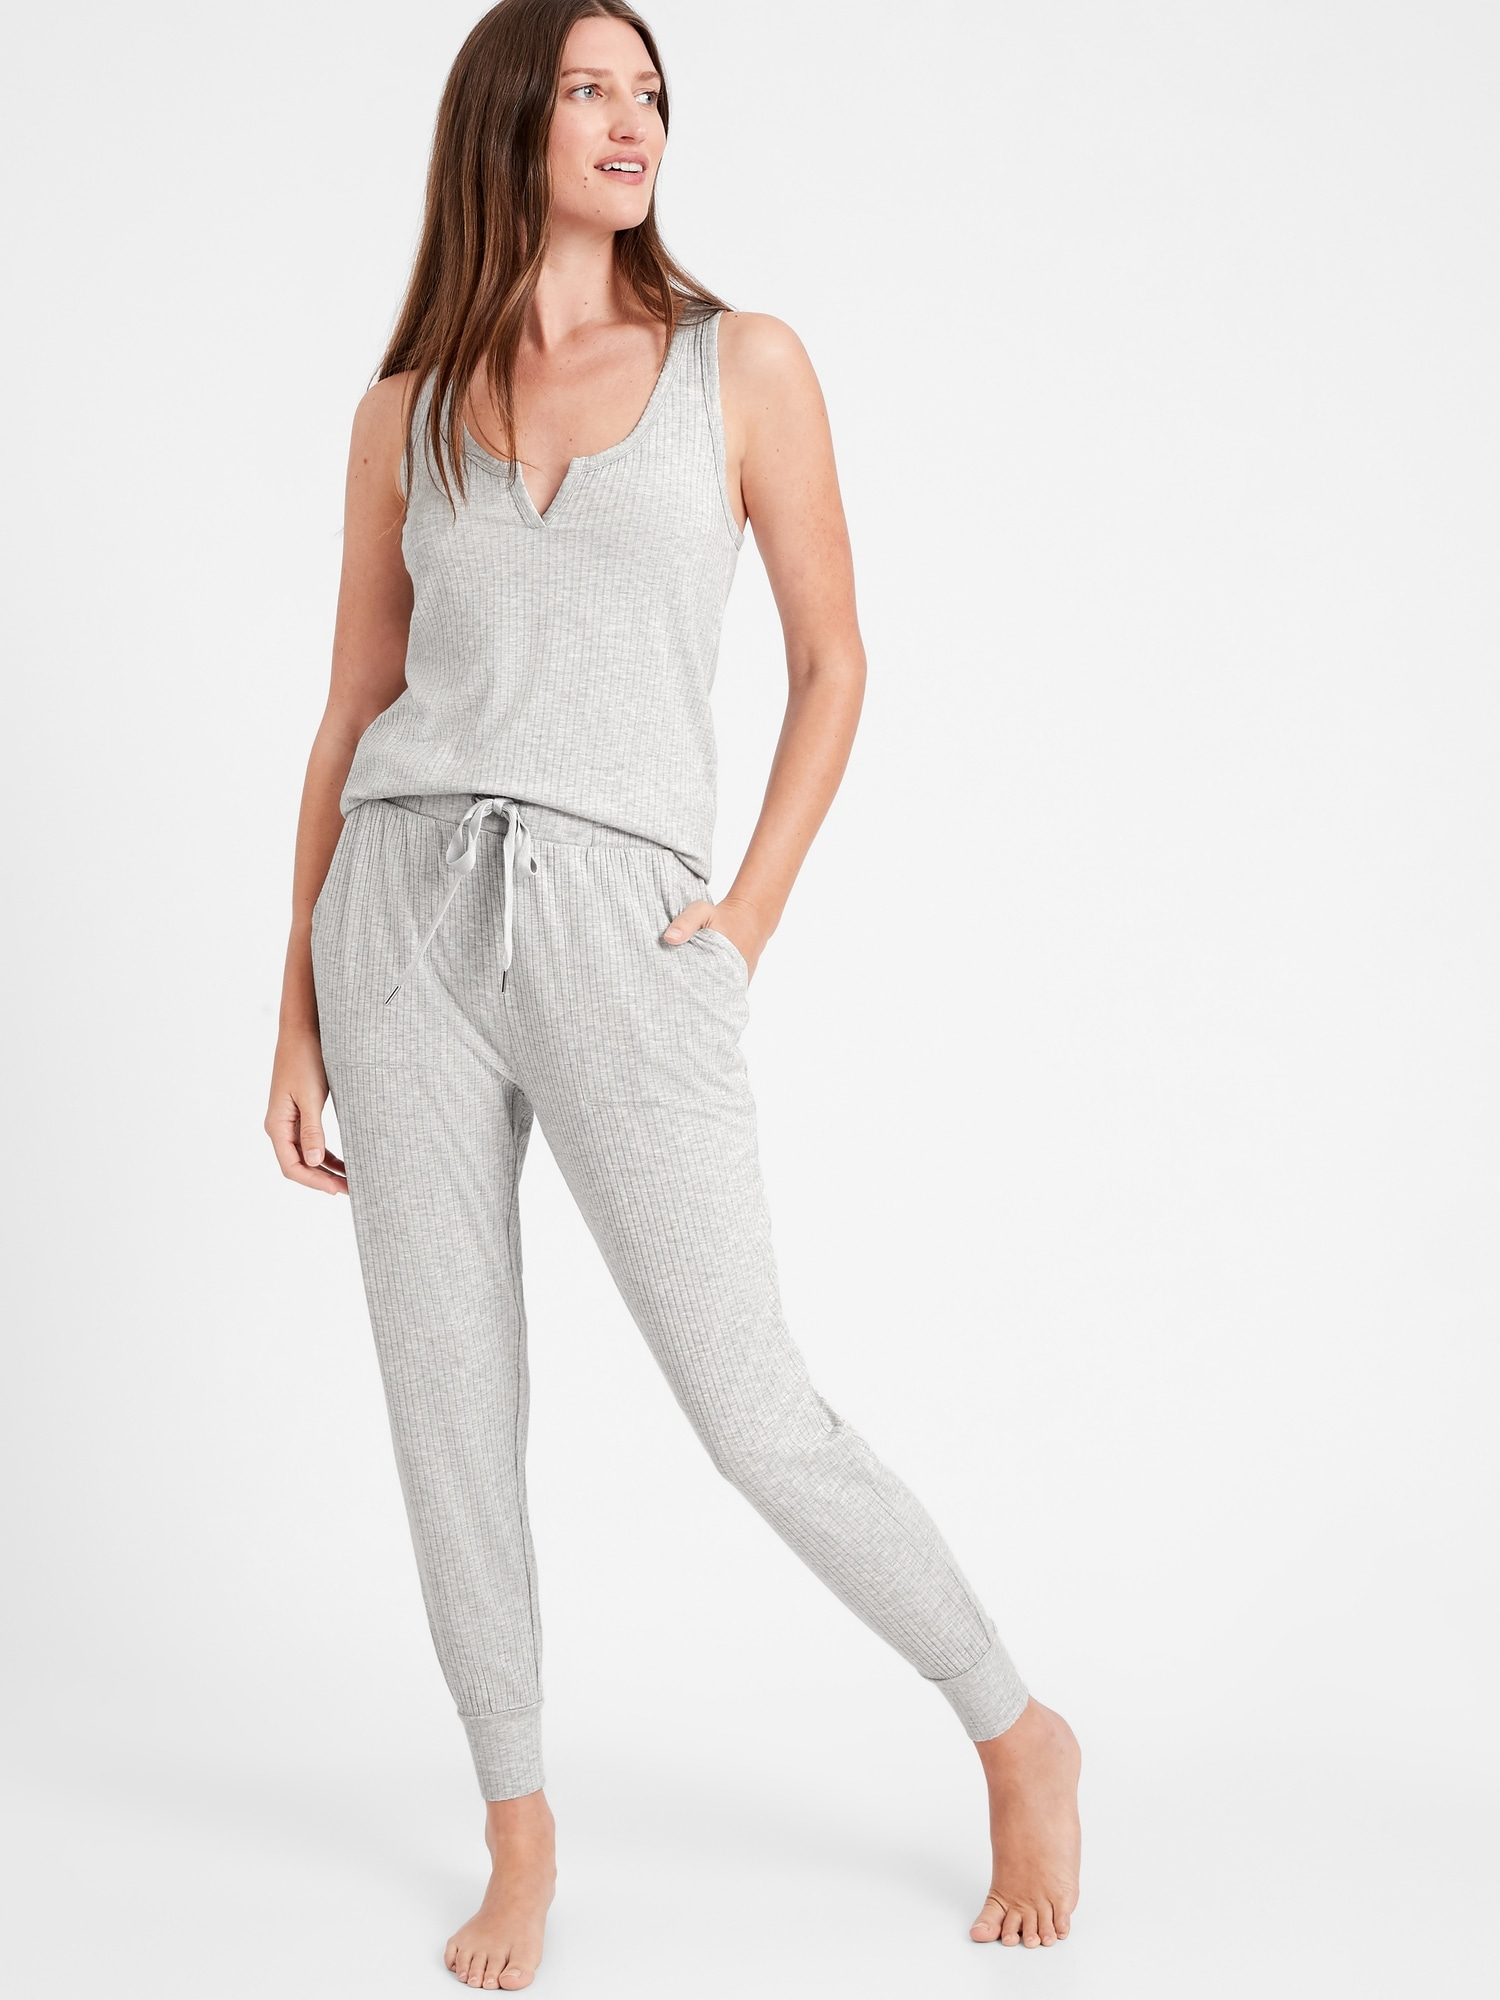 Banana Republic Ribbed Pajama Tank and Jogger | Weekly Finds + The Most Amazing Floral Cuticle Oil